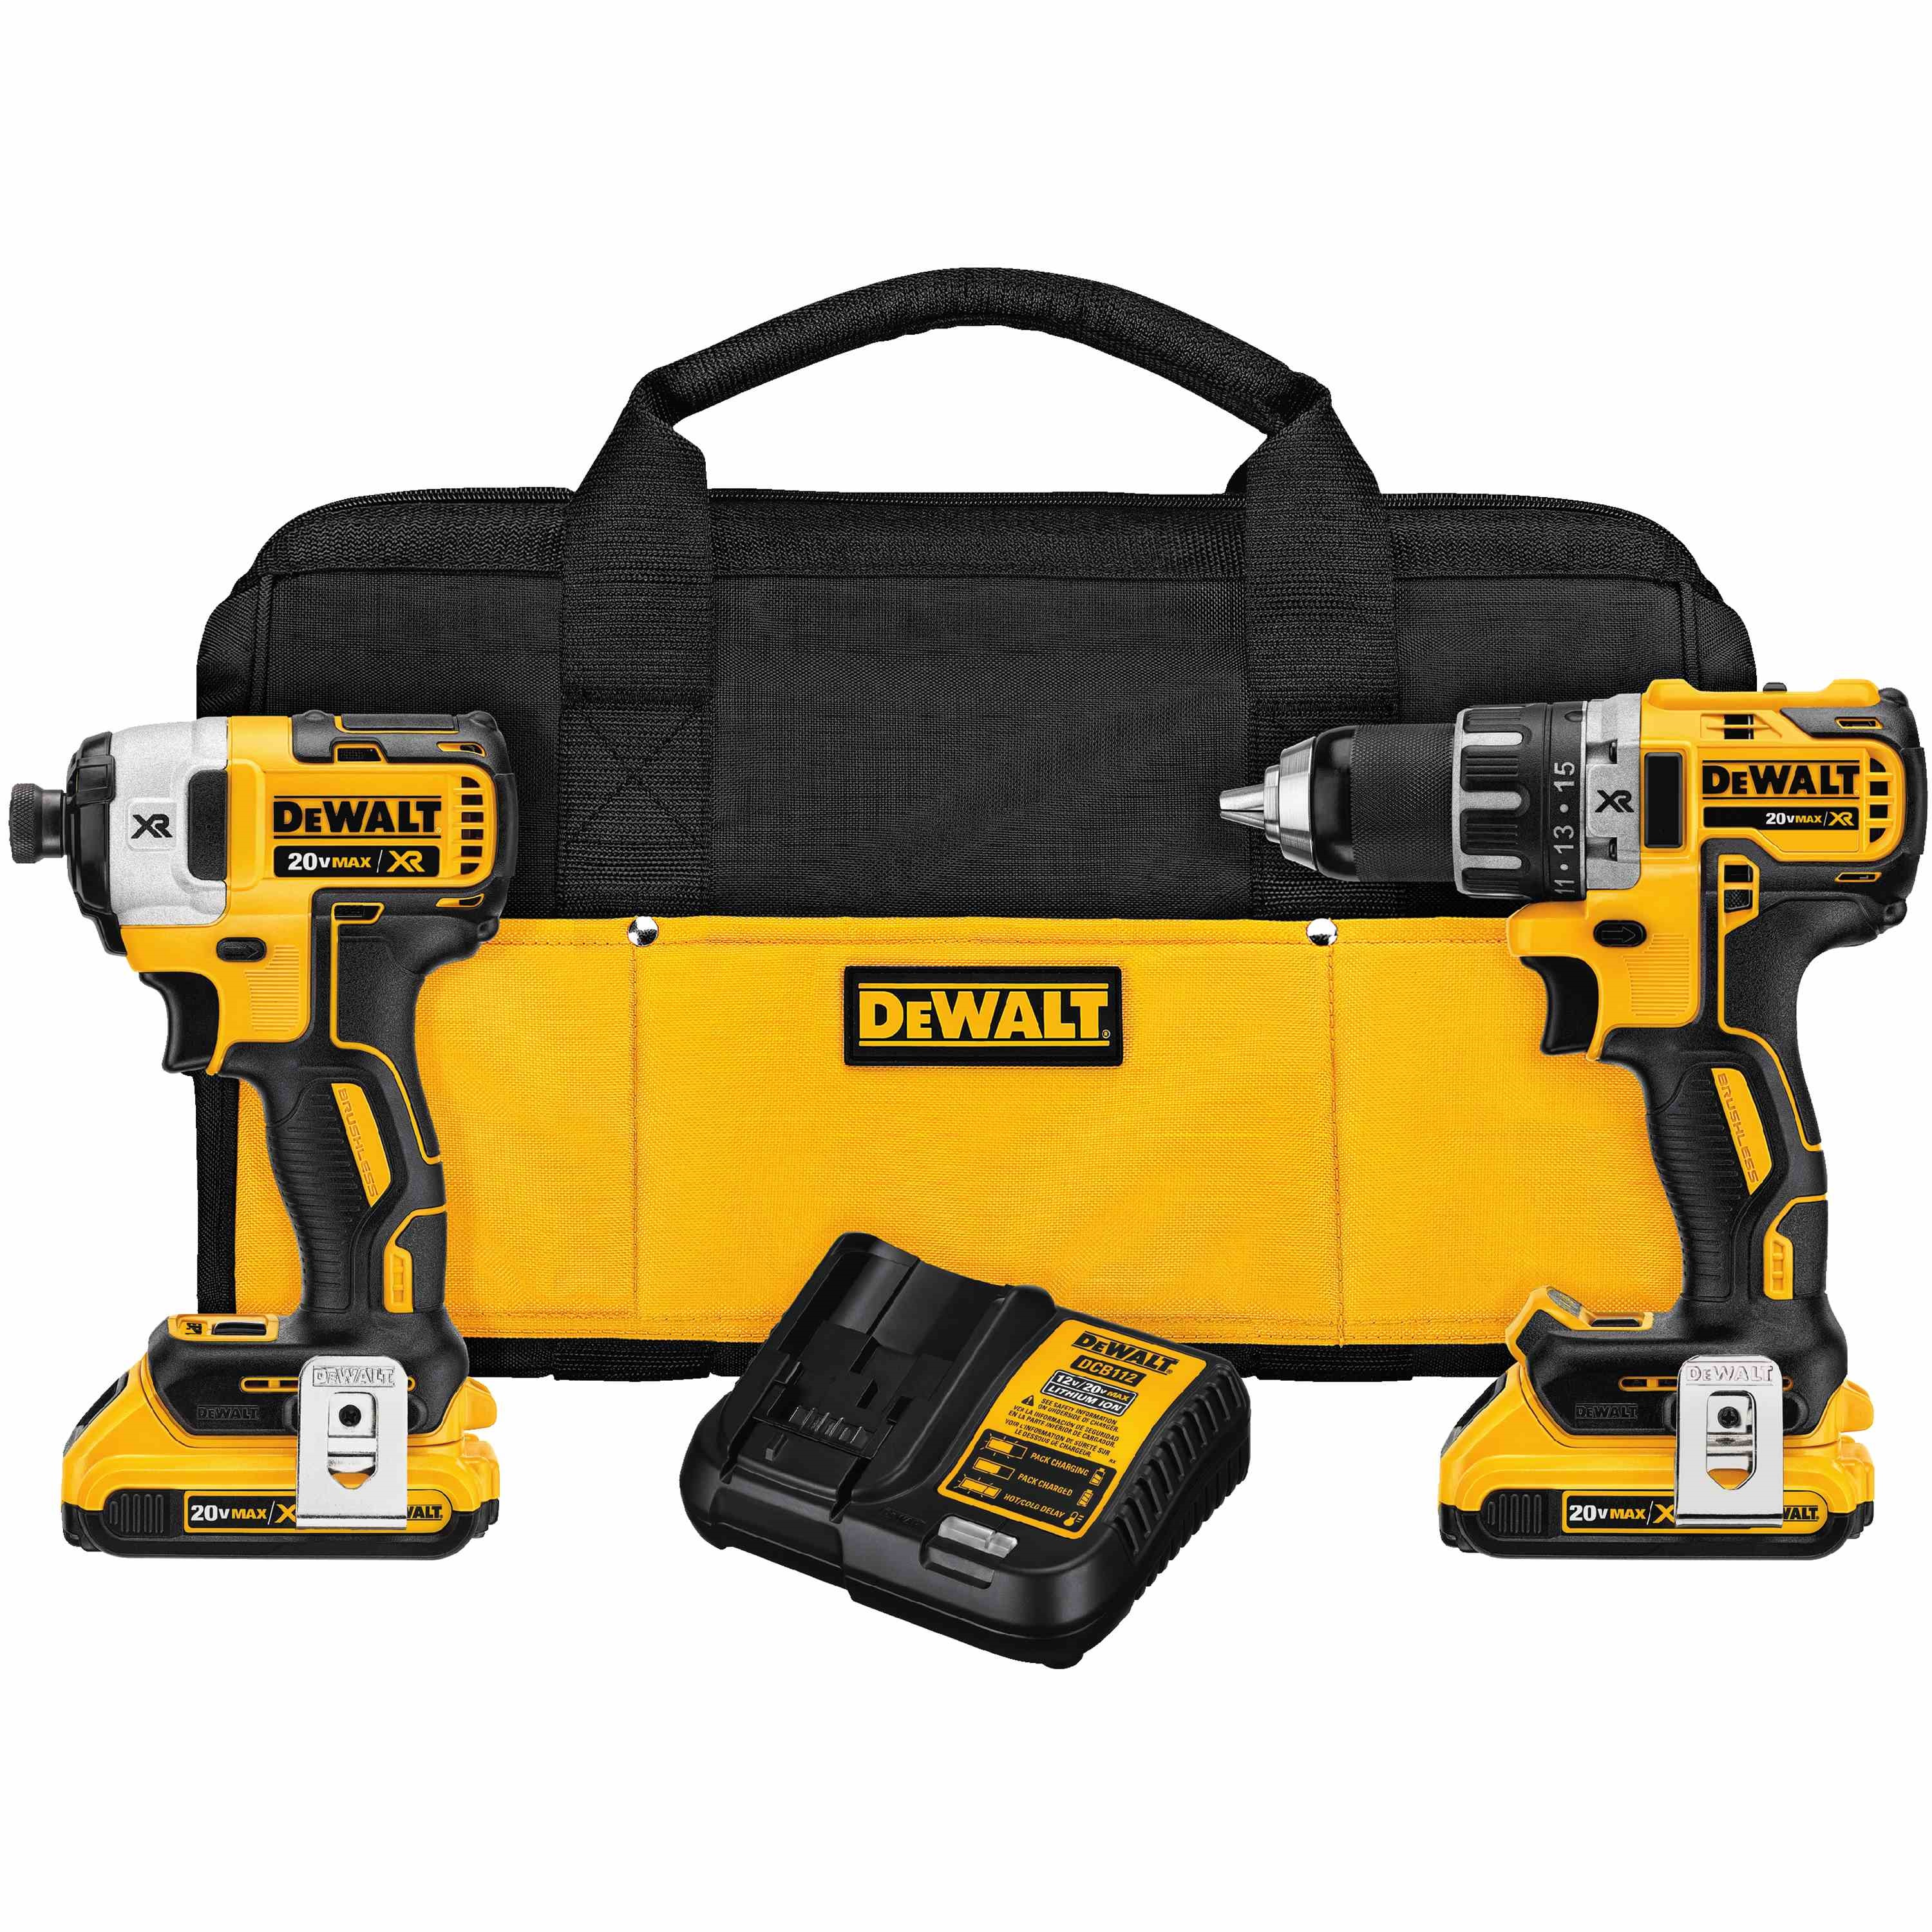 DeWalt,DCK283D2,20V MAX* XR Lithium Ion Brushless Compact Drill / Driver & Impact Driver Combo Kit